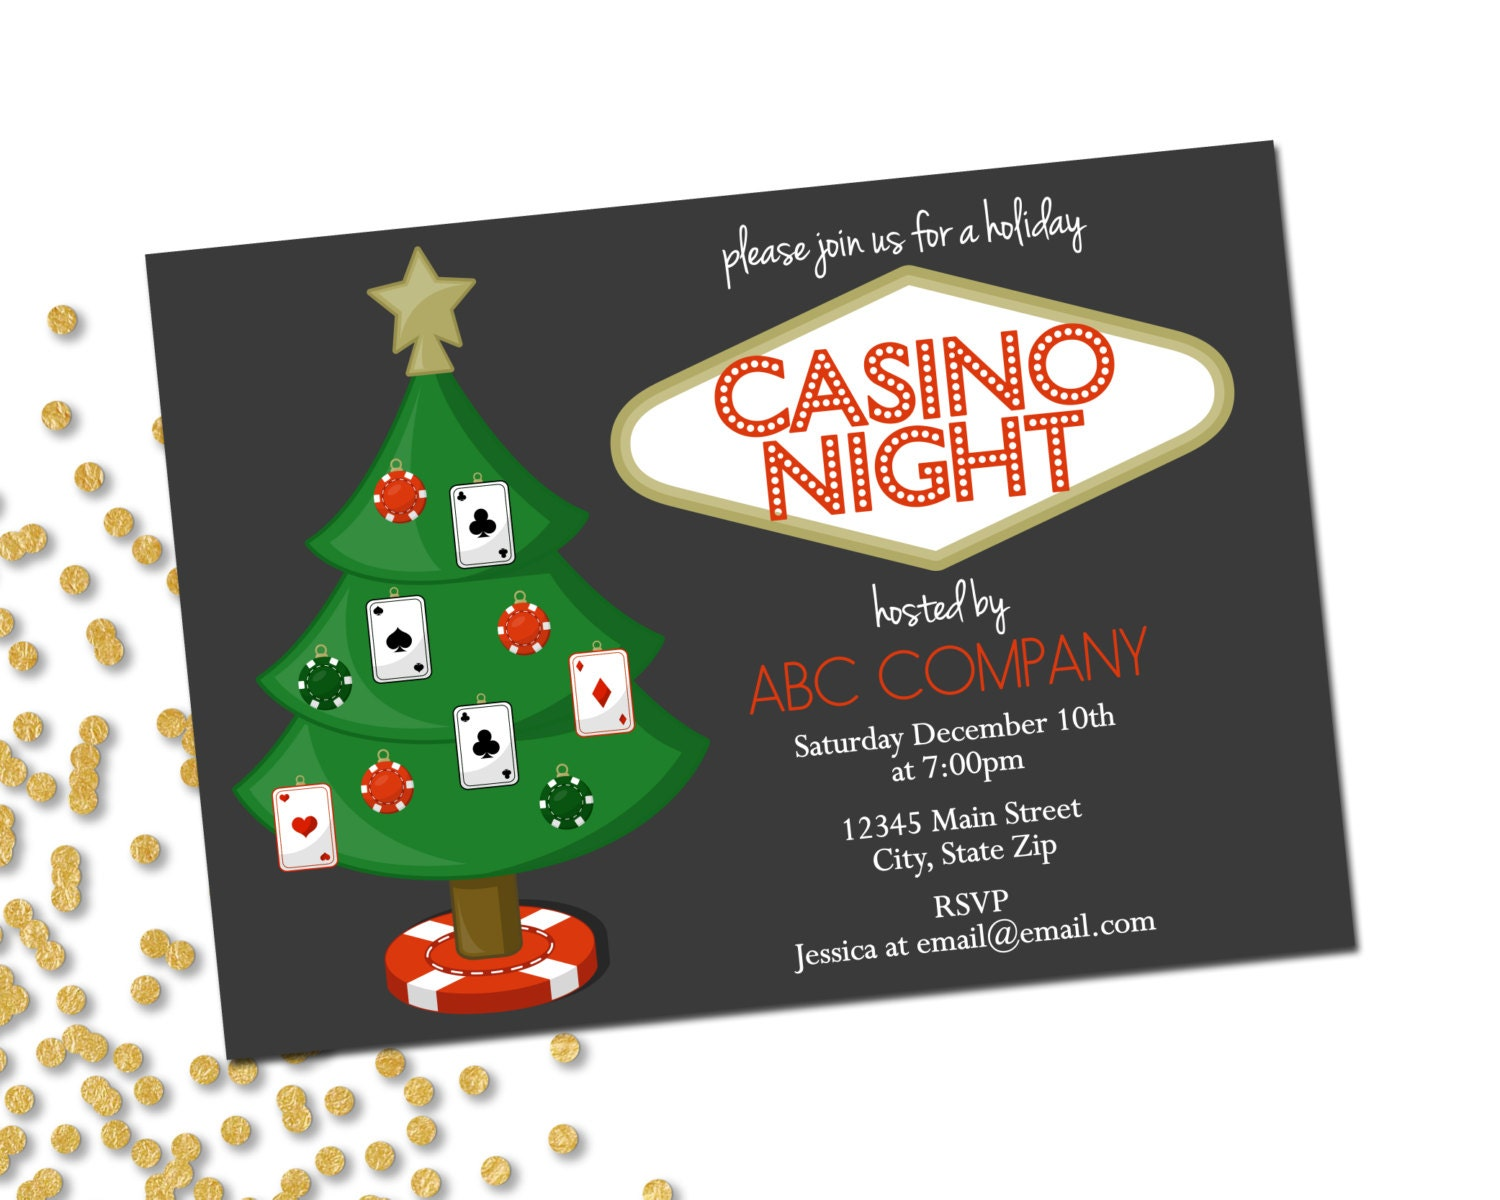 It's just a picture of Ridiculous Free Printable Casino Party Invitations